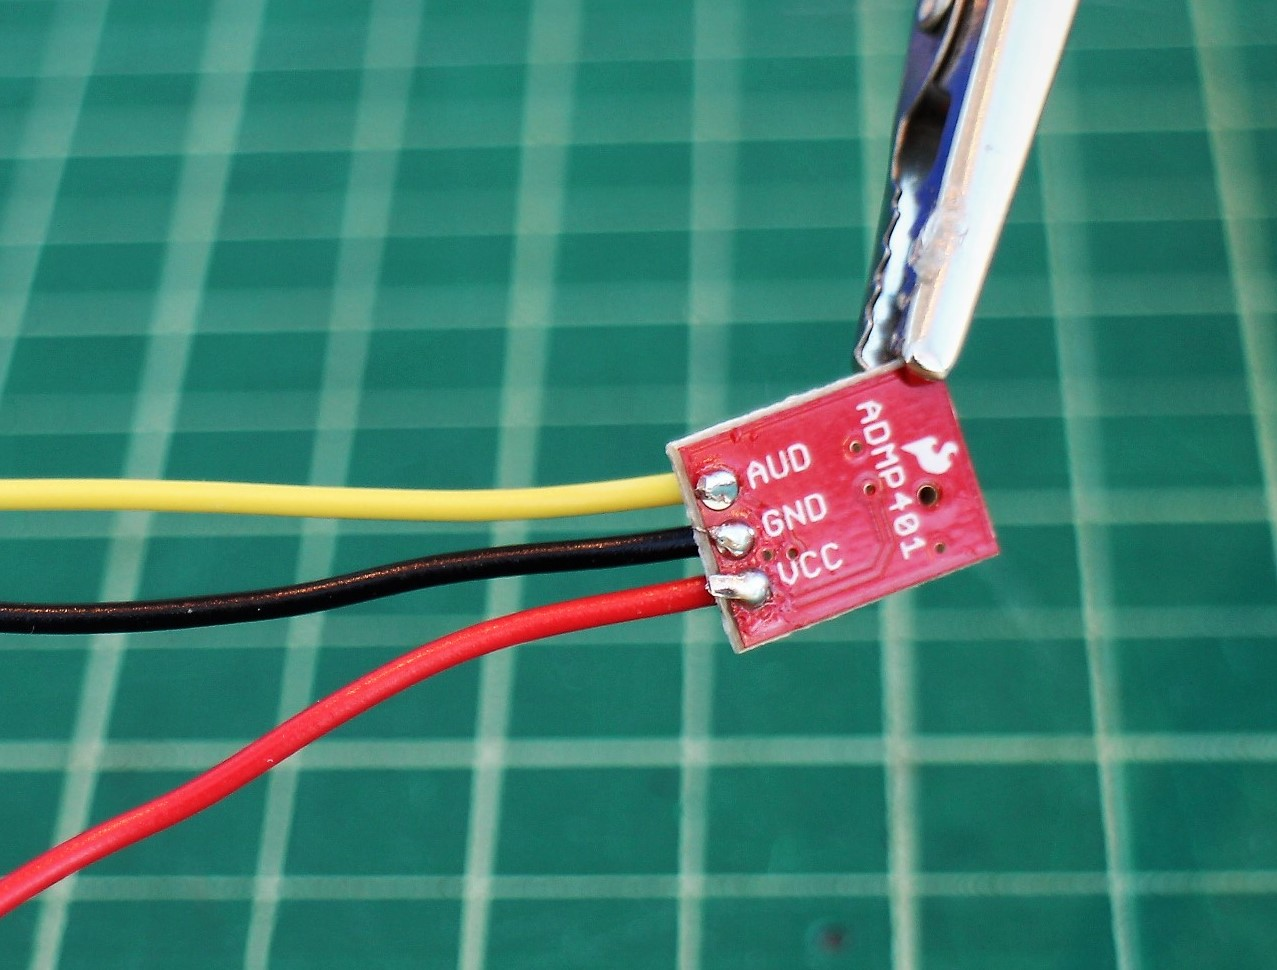 MEMS Microphone Hookup Guide - learn.sparkfun.com